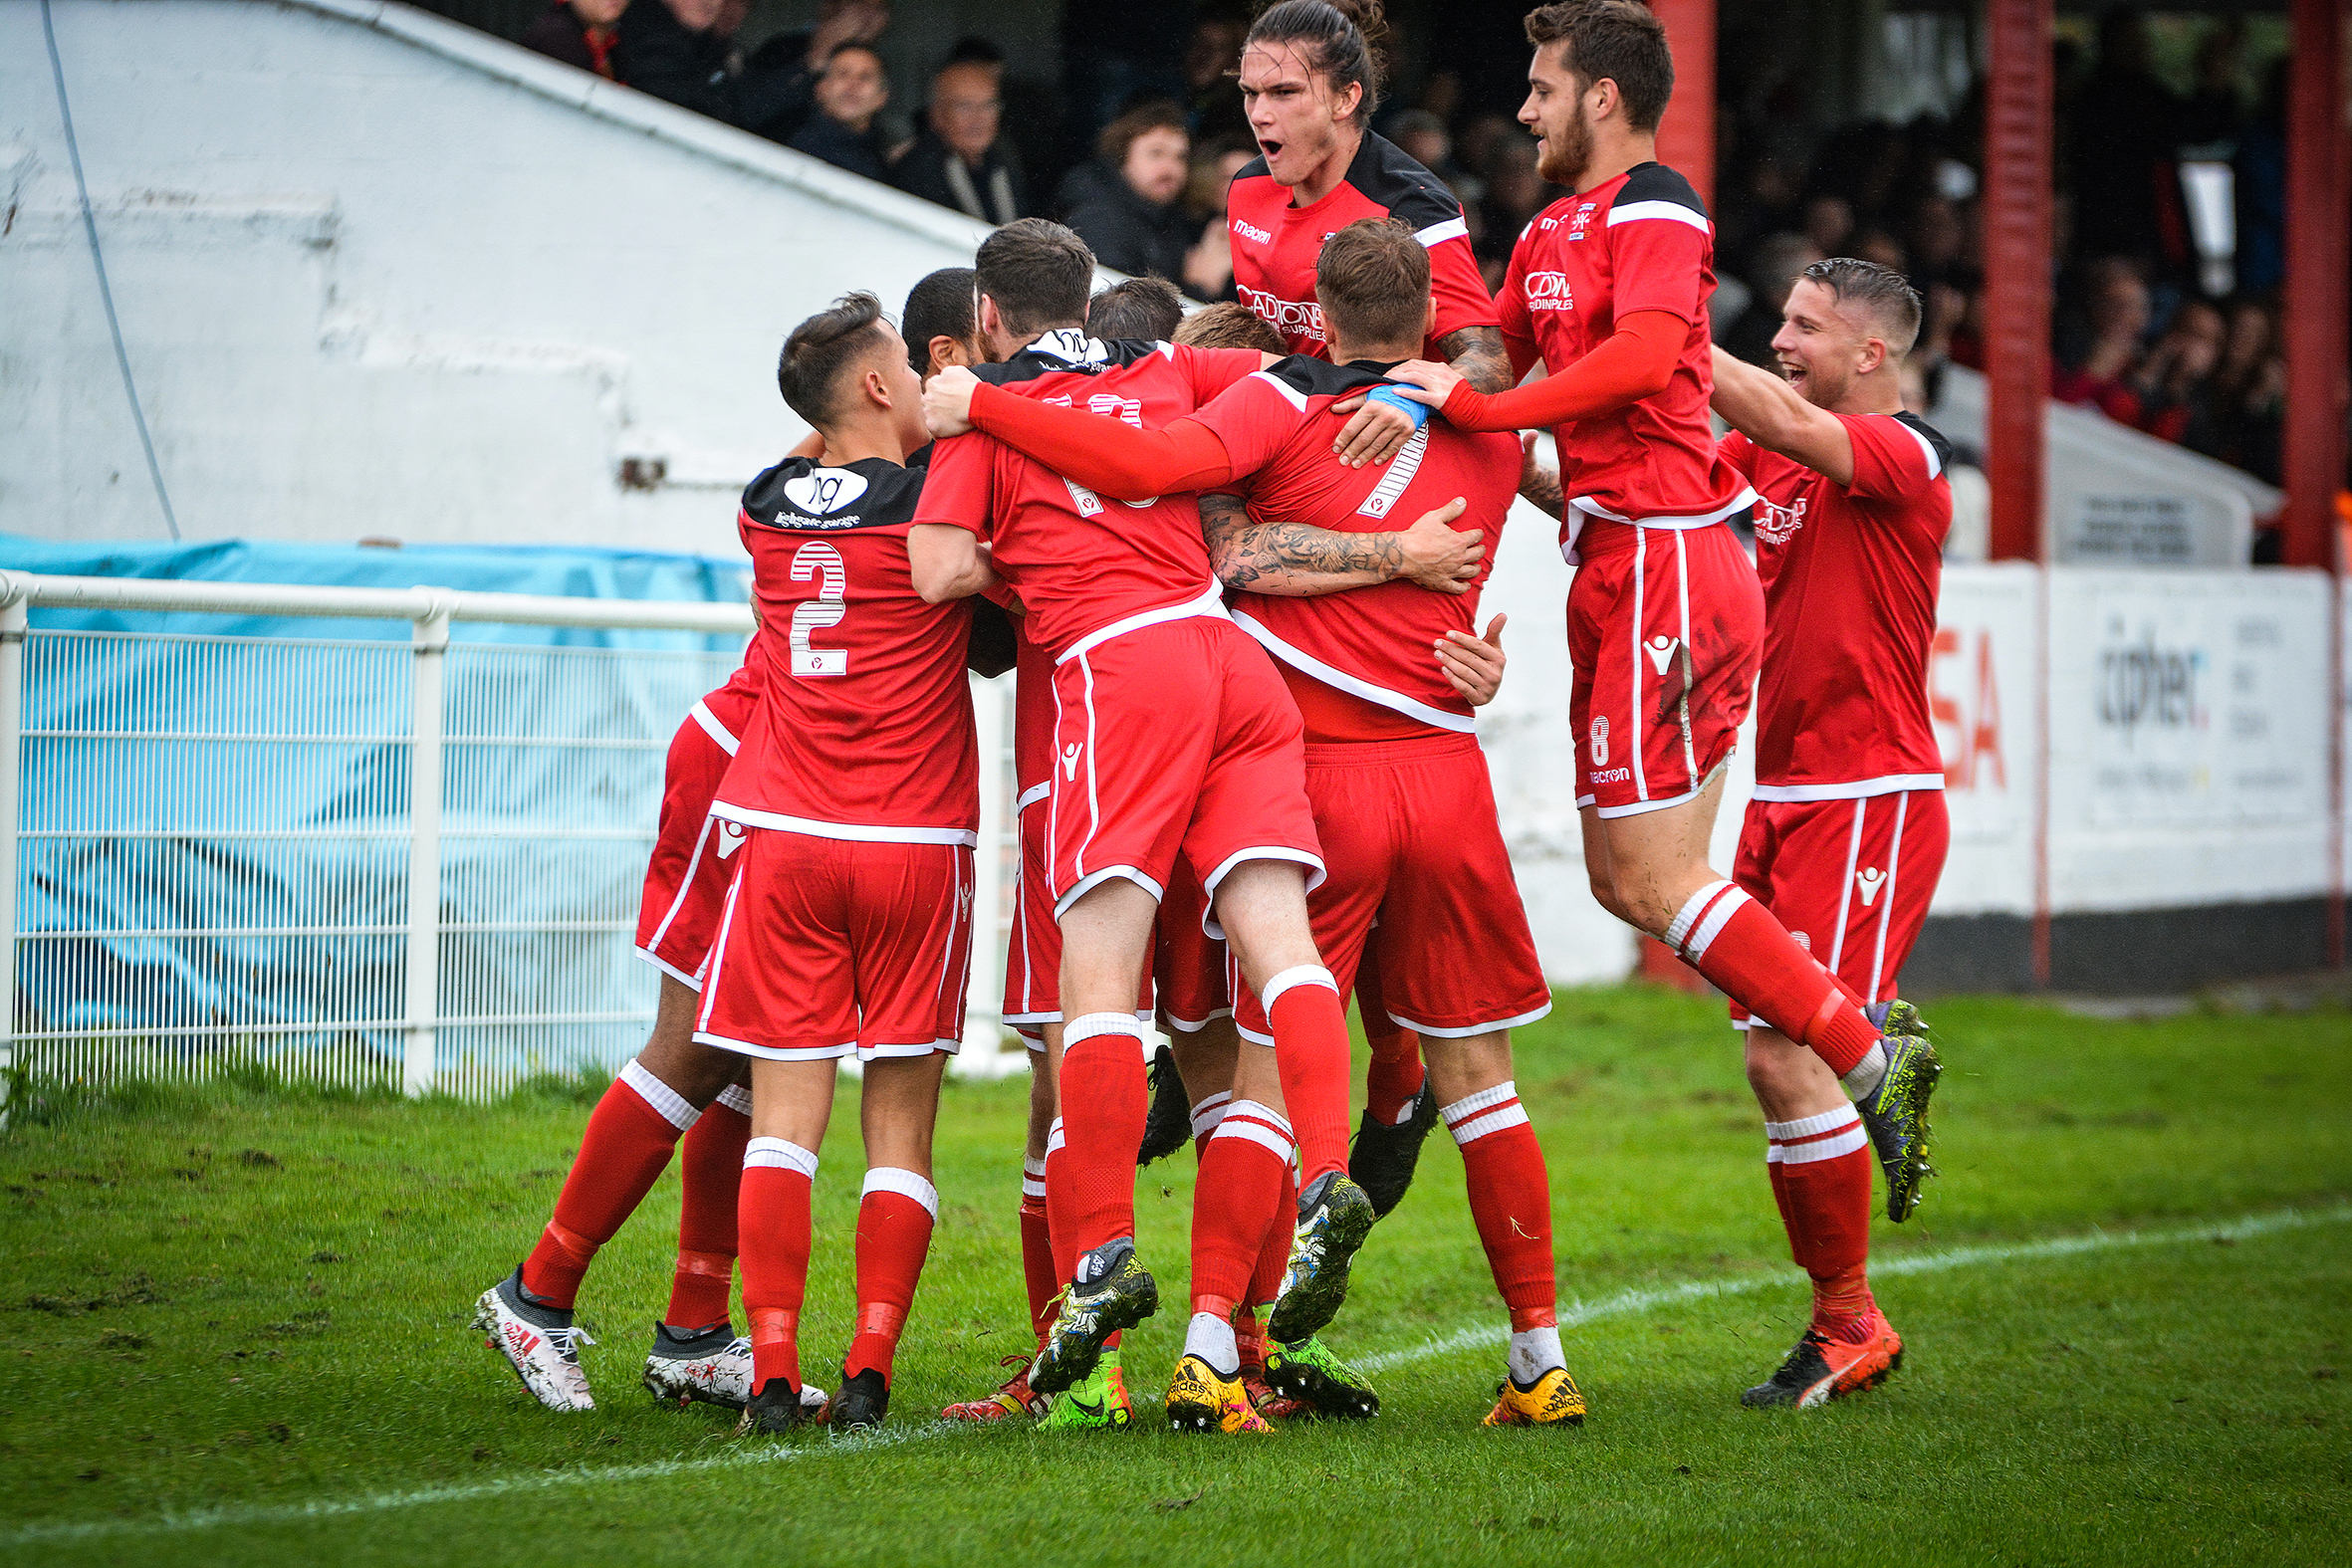 The Alport players celebrate another goal at Yockings Park PICTURE BY JOSH PEARCE